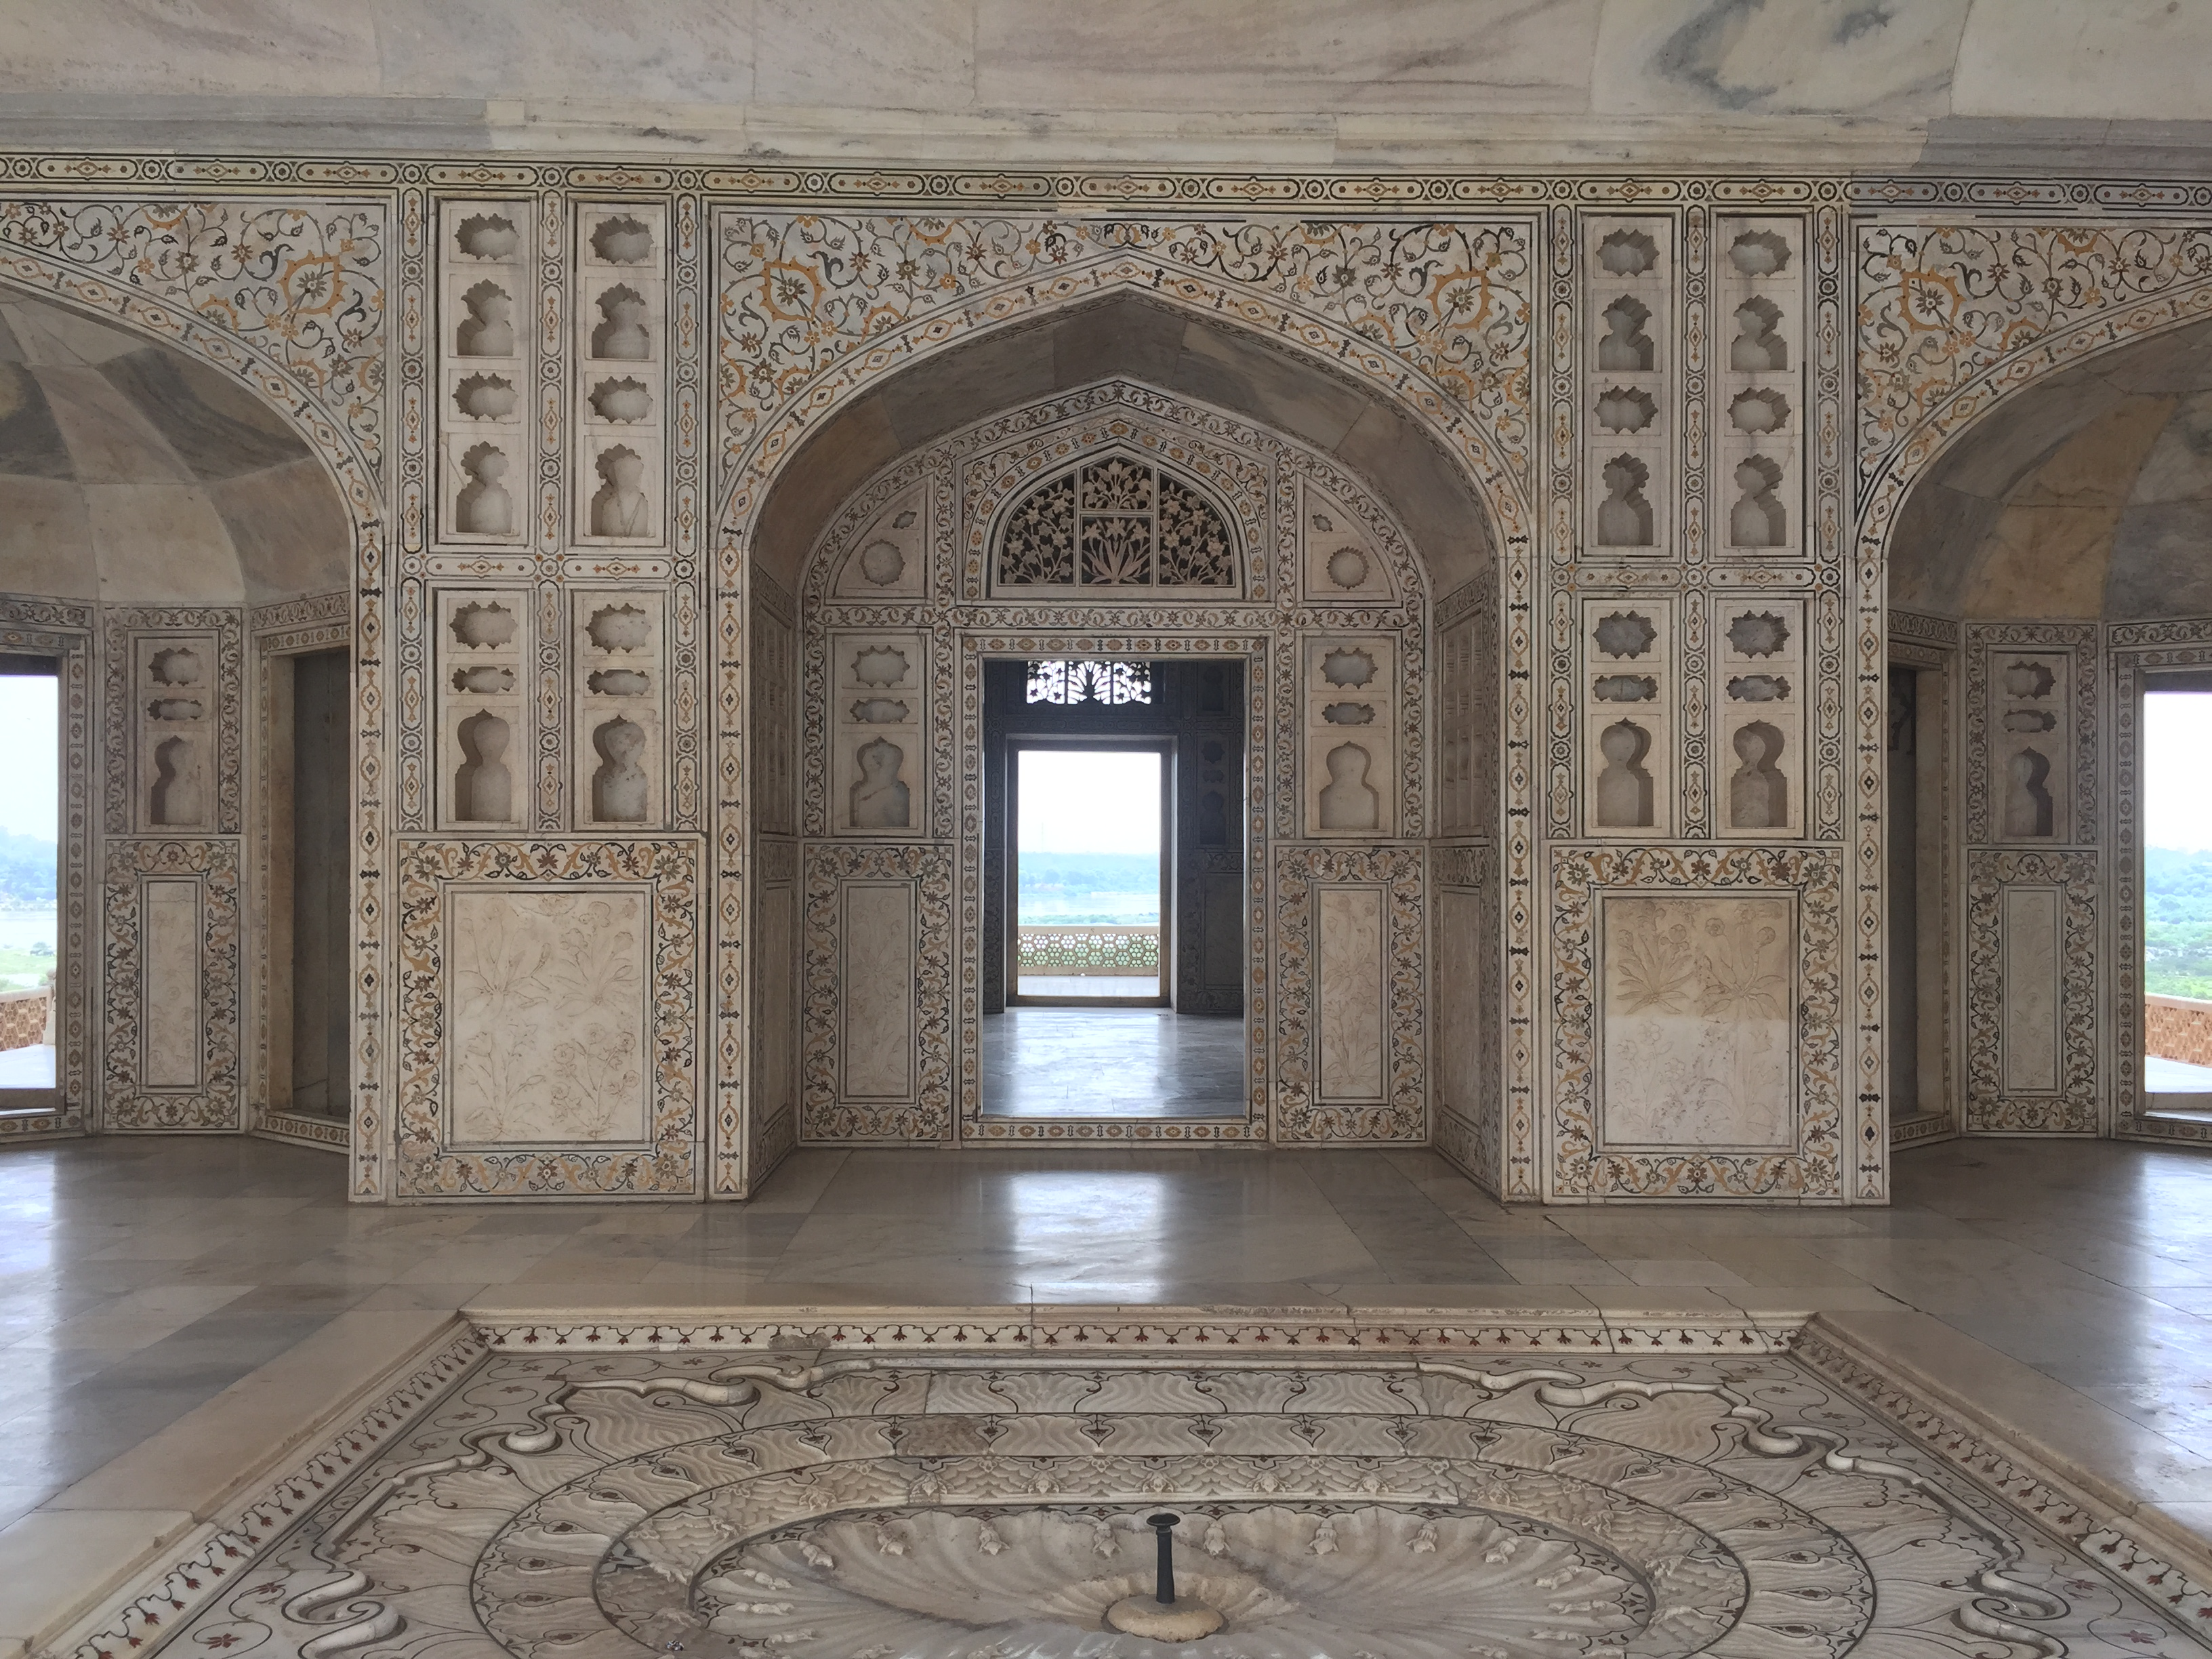 Agra Fort interiors